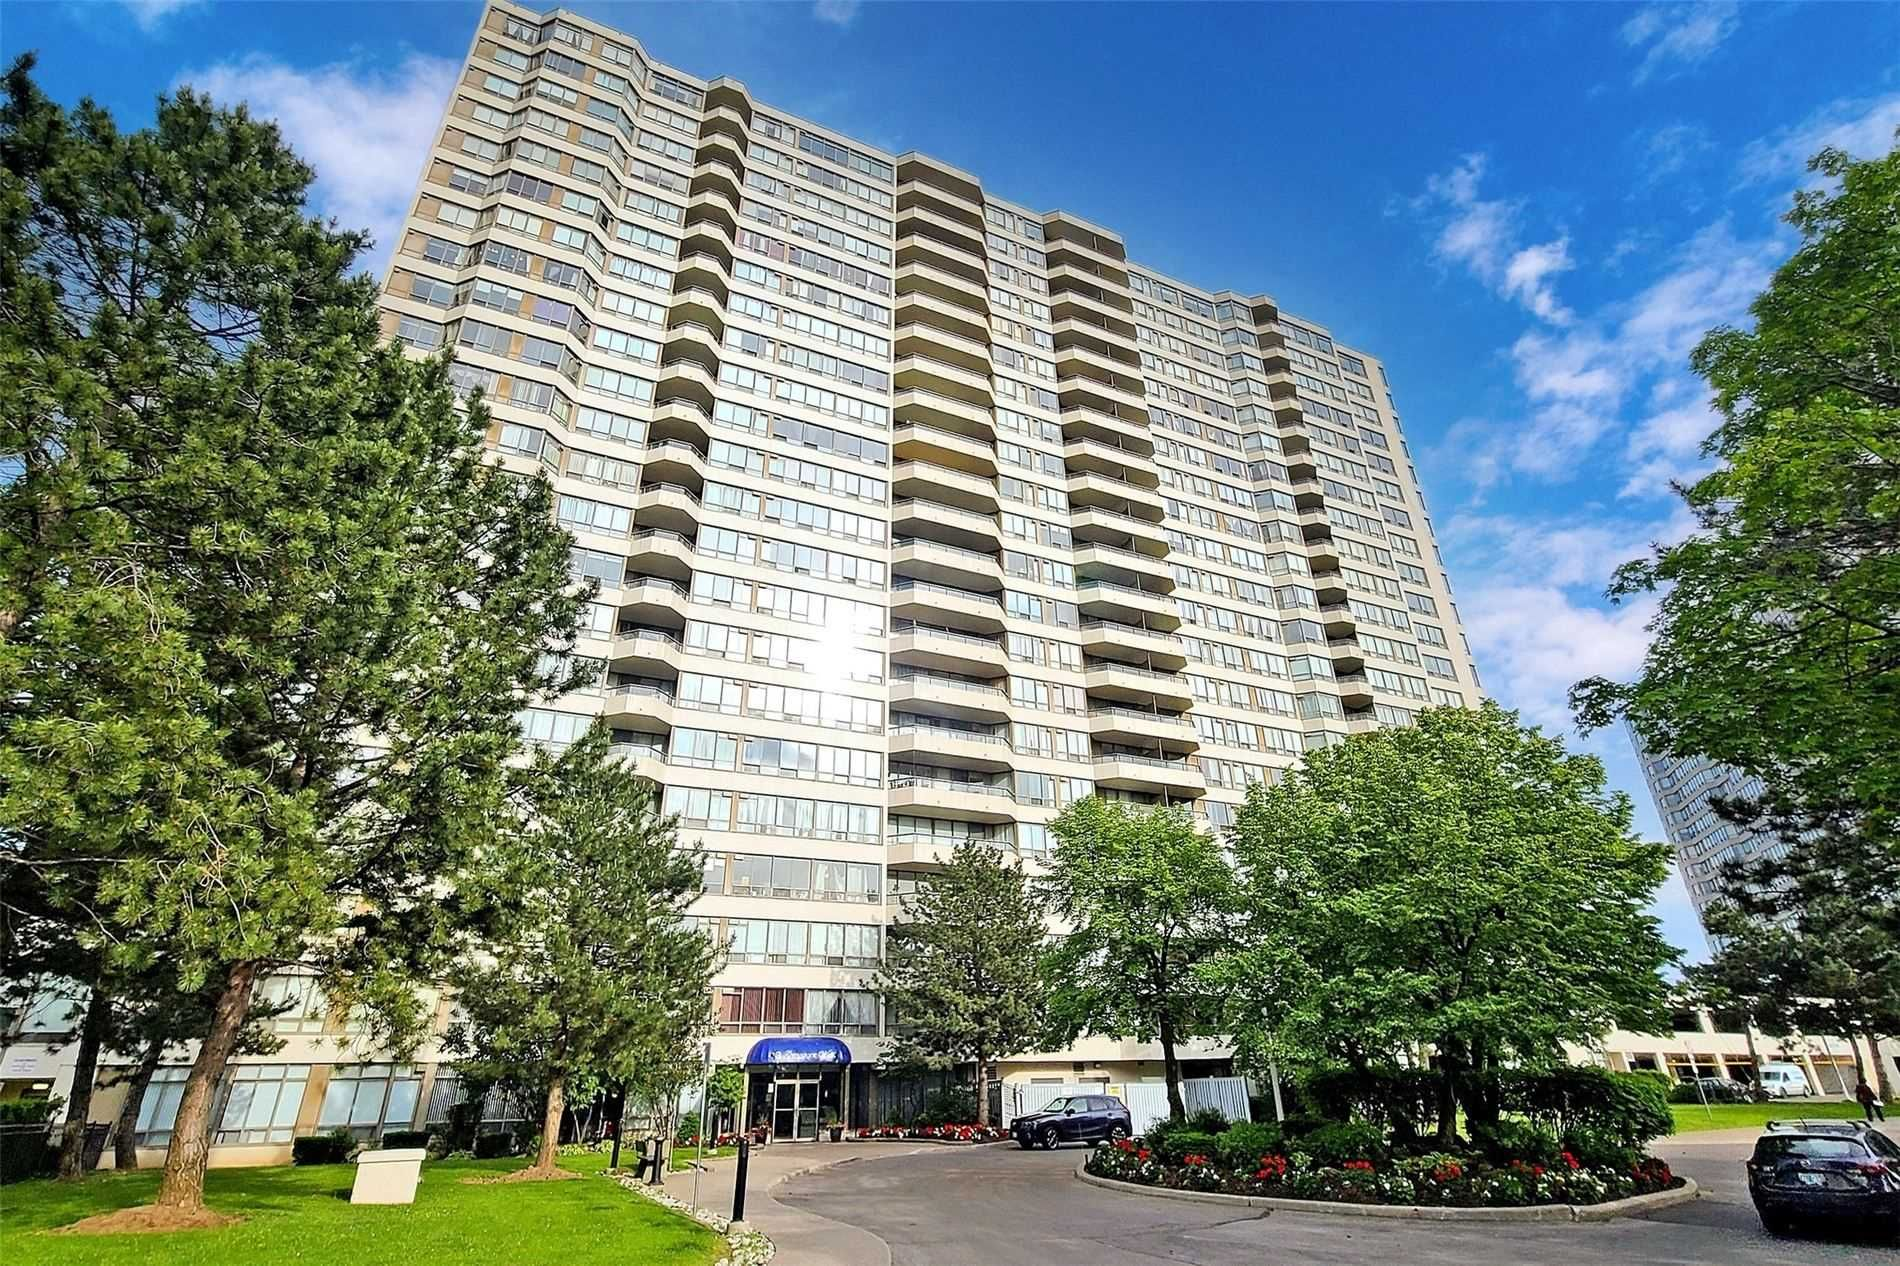 3 Greystone Walk Dr, unit 928 for sale in Toronto - image #1